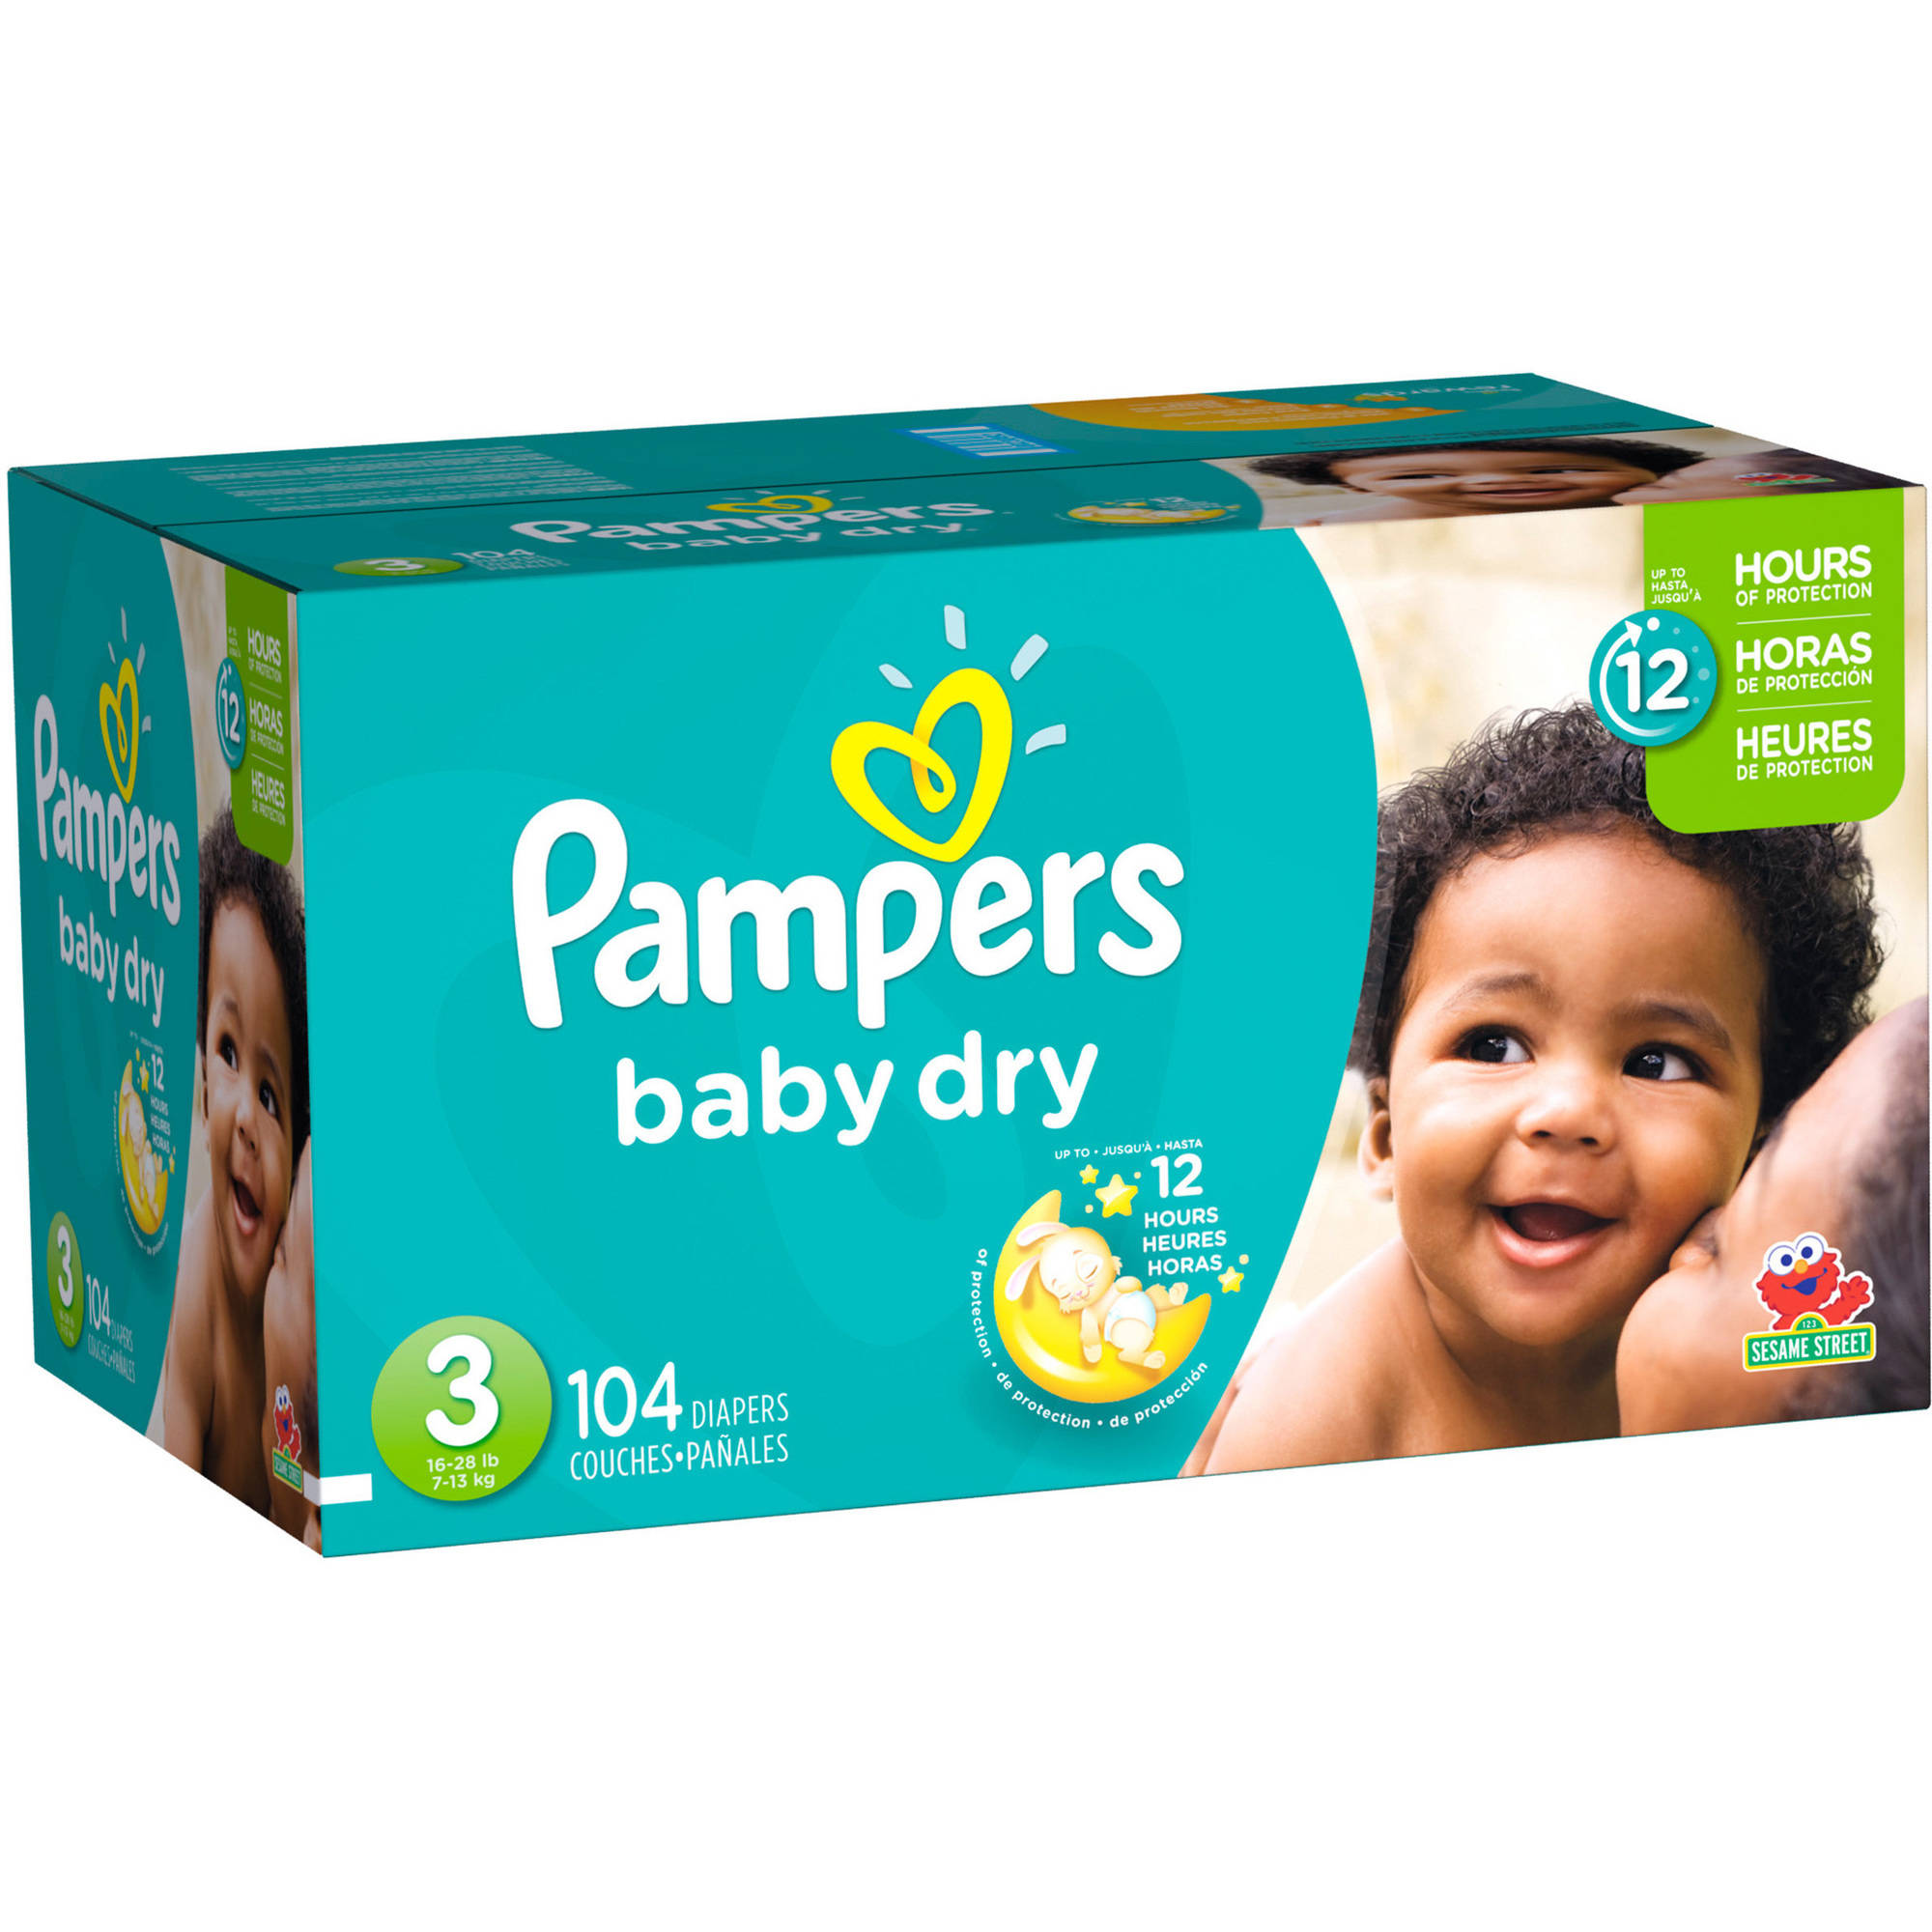 If I'm confident about one thing as a first time mom, its this diaper. AFFORDABLE. GREAT FIT. NO LEAKS. Pampers has served us faithfully, and the Swaddlers line has been excellent. Easily indicates even the slightest wet diaper to busy moms which minimize the chances of chafing (if any)/5(K).